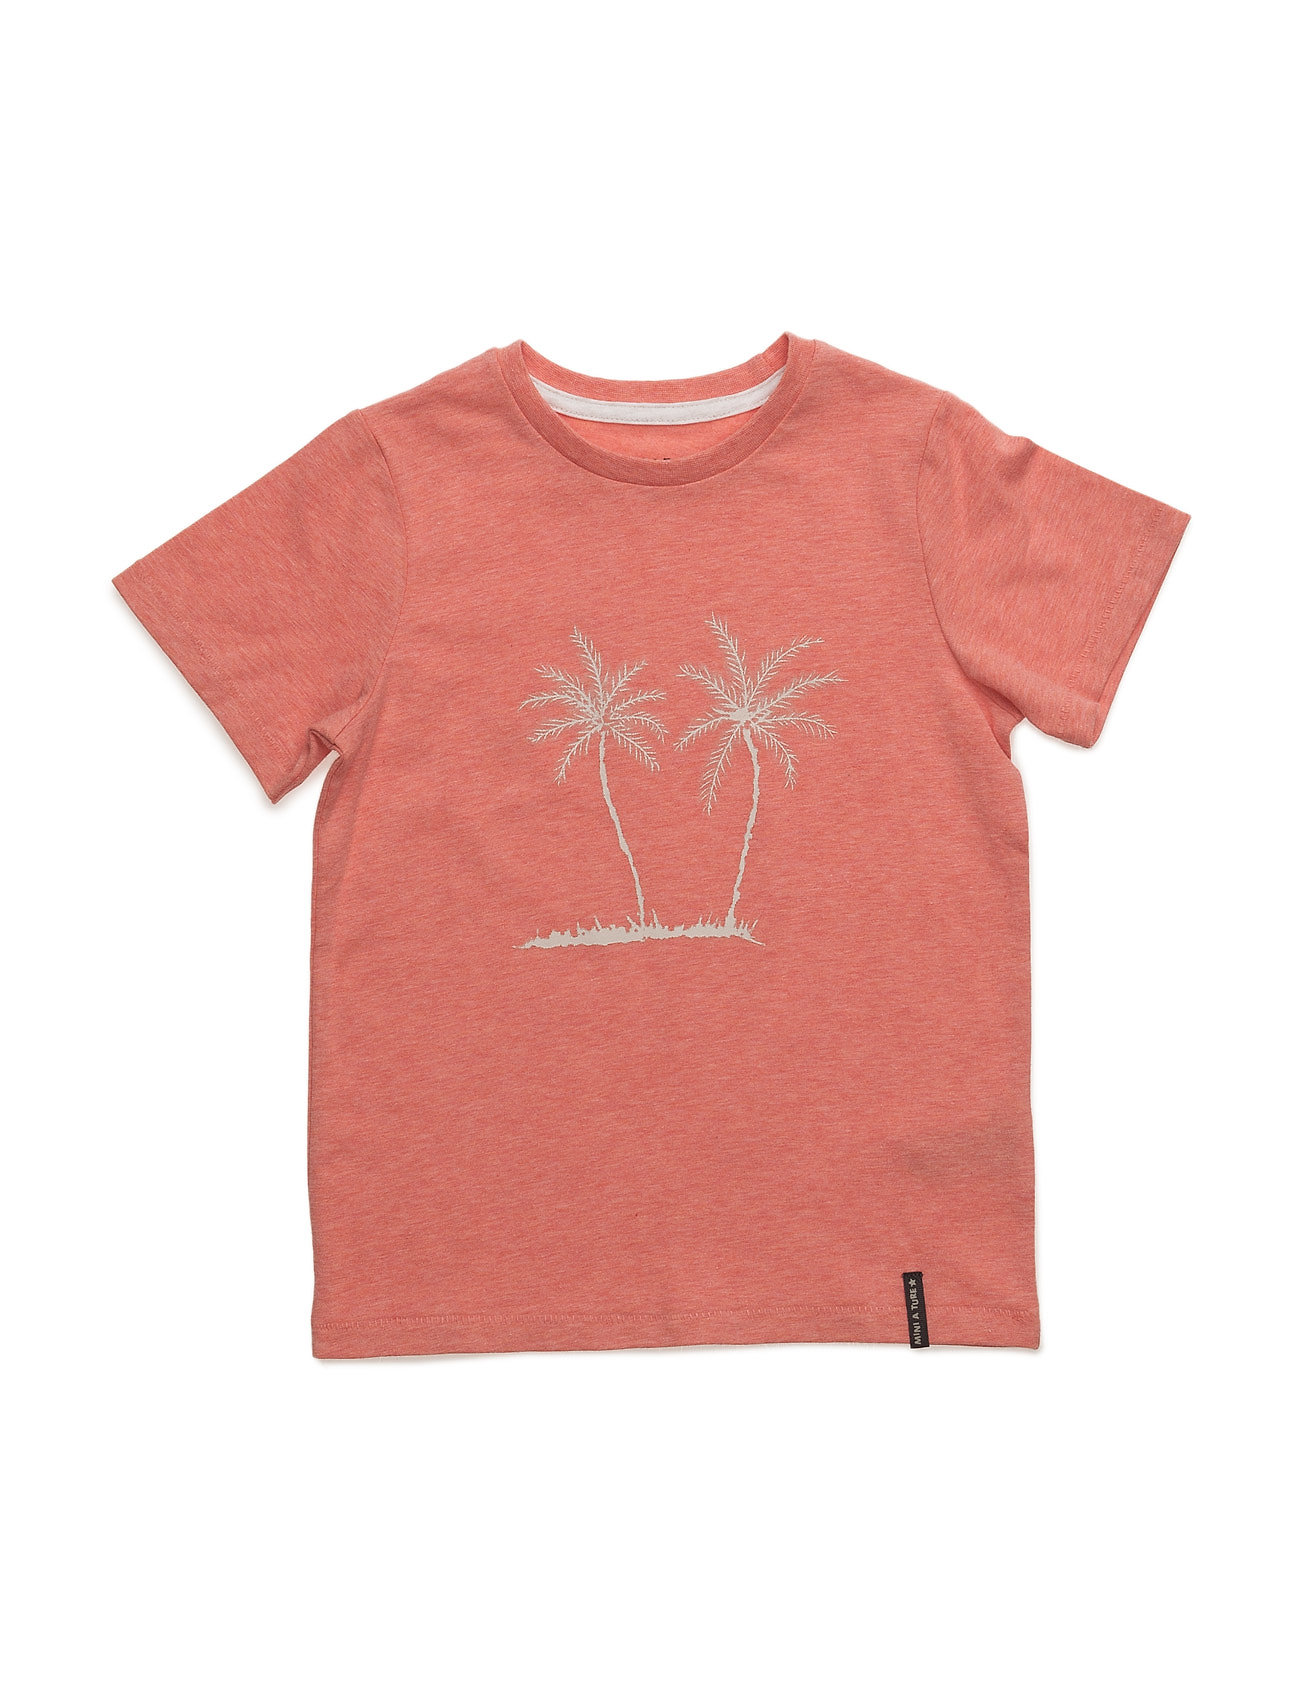 Mini A Ture Palmtree, MK T-Shirt LS - STRAWBERRY ICE